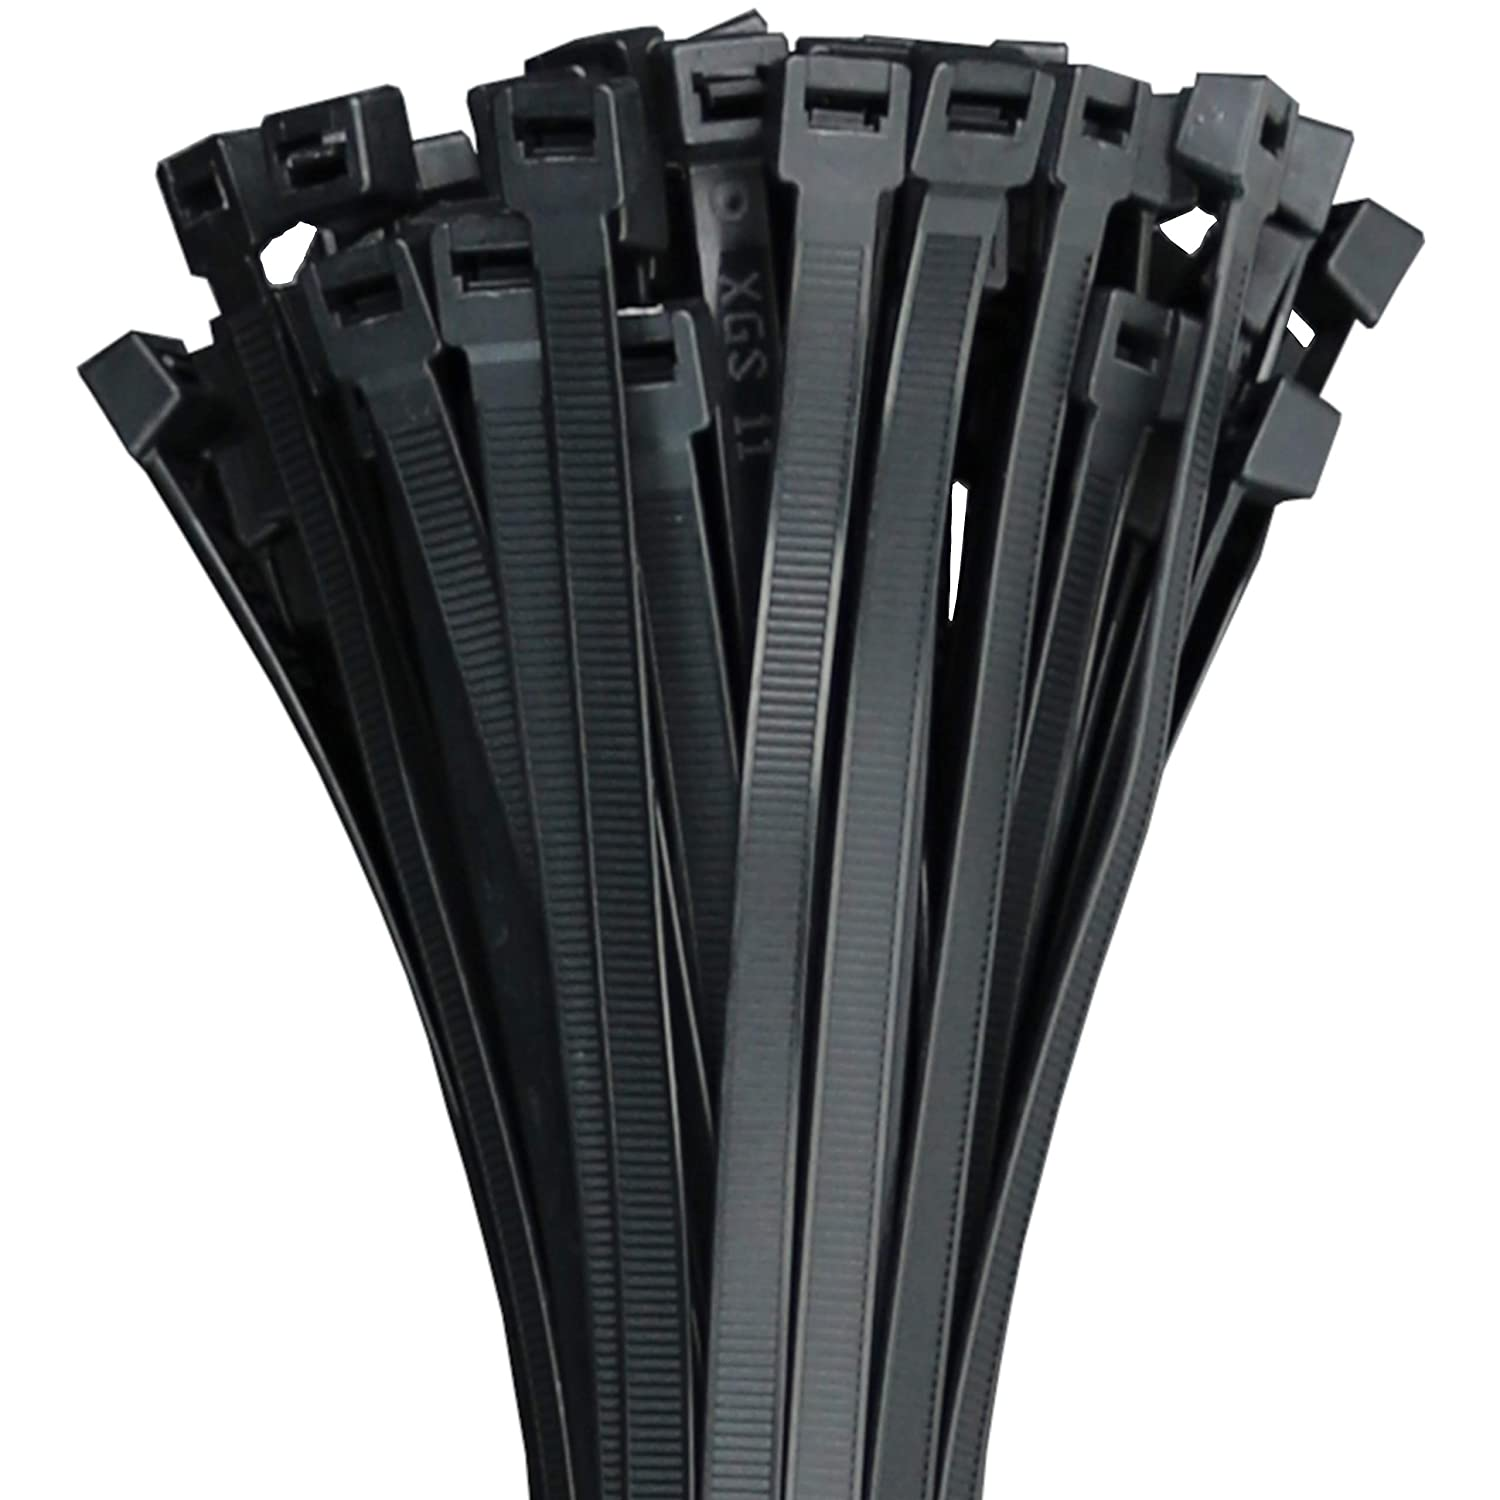 250 Premium Heavy Duty 6 Inch Zip Ties | Black Nylon Cable Ties | XGS Wire Ties by APTronix (6 Inch, Black)